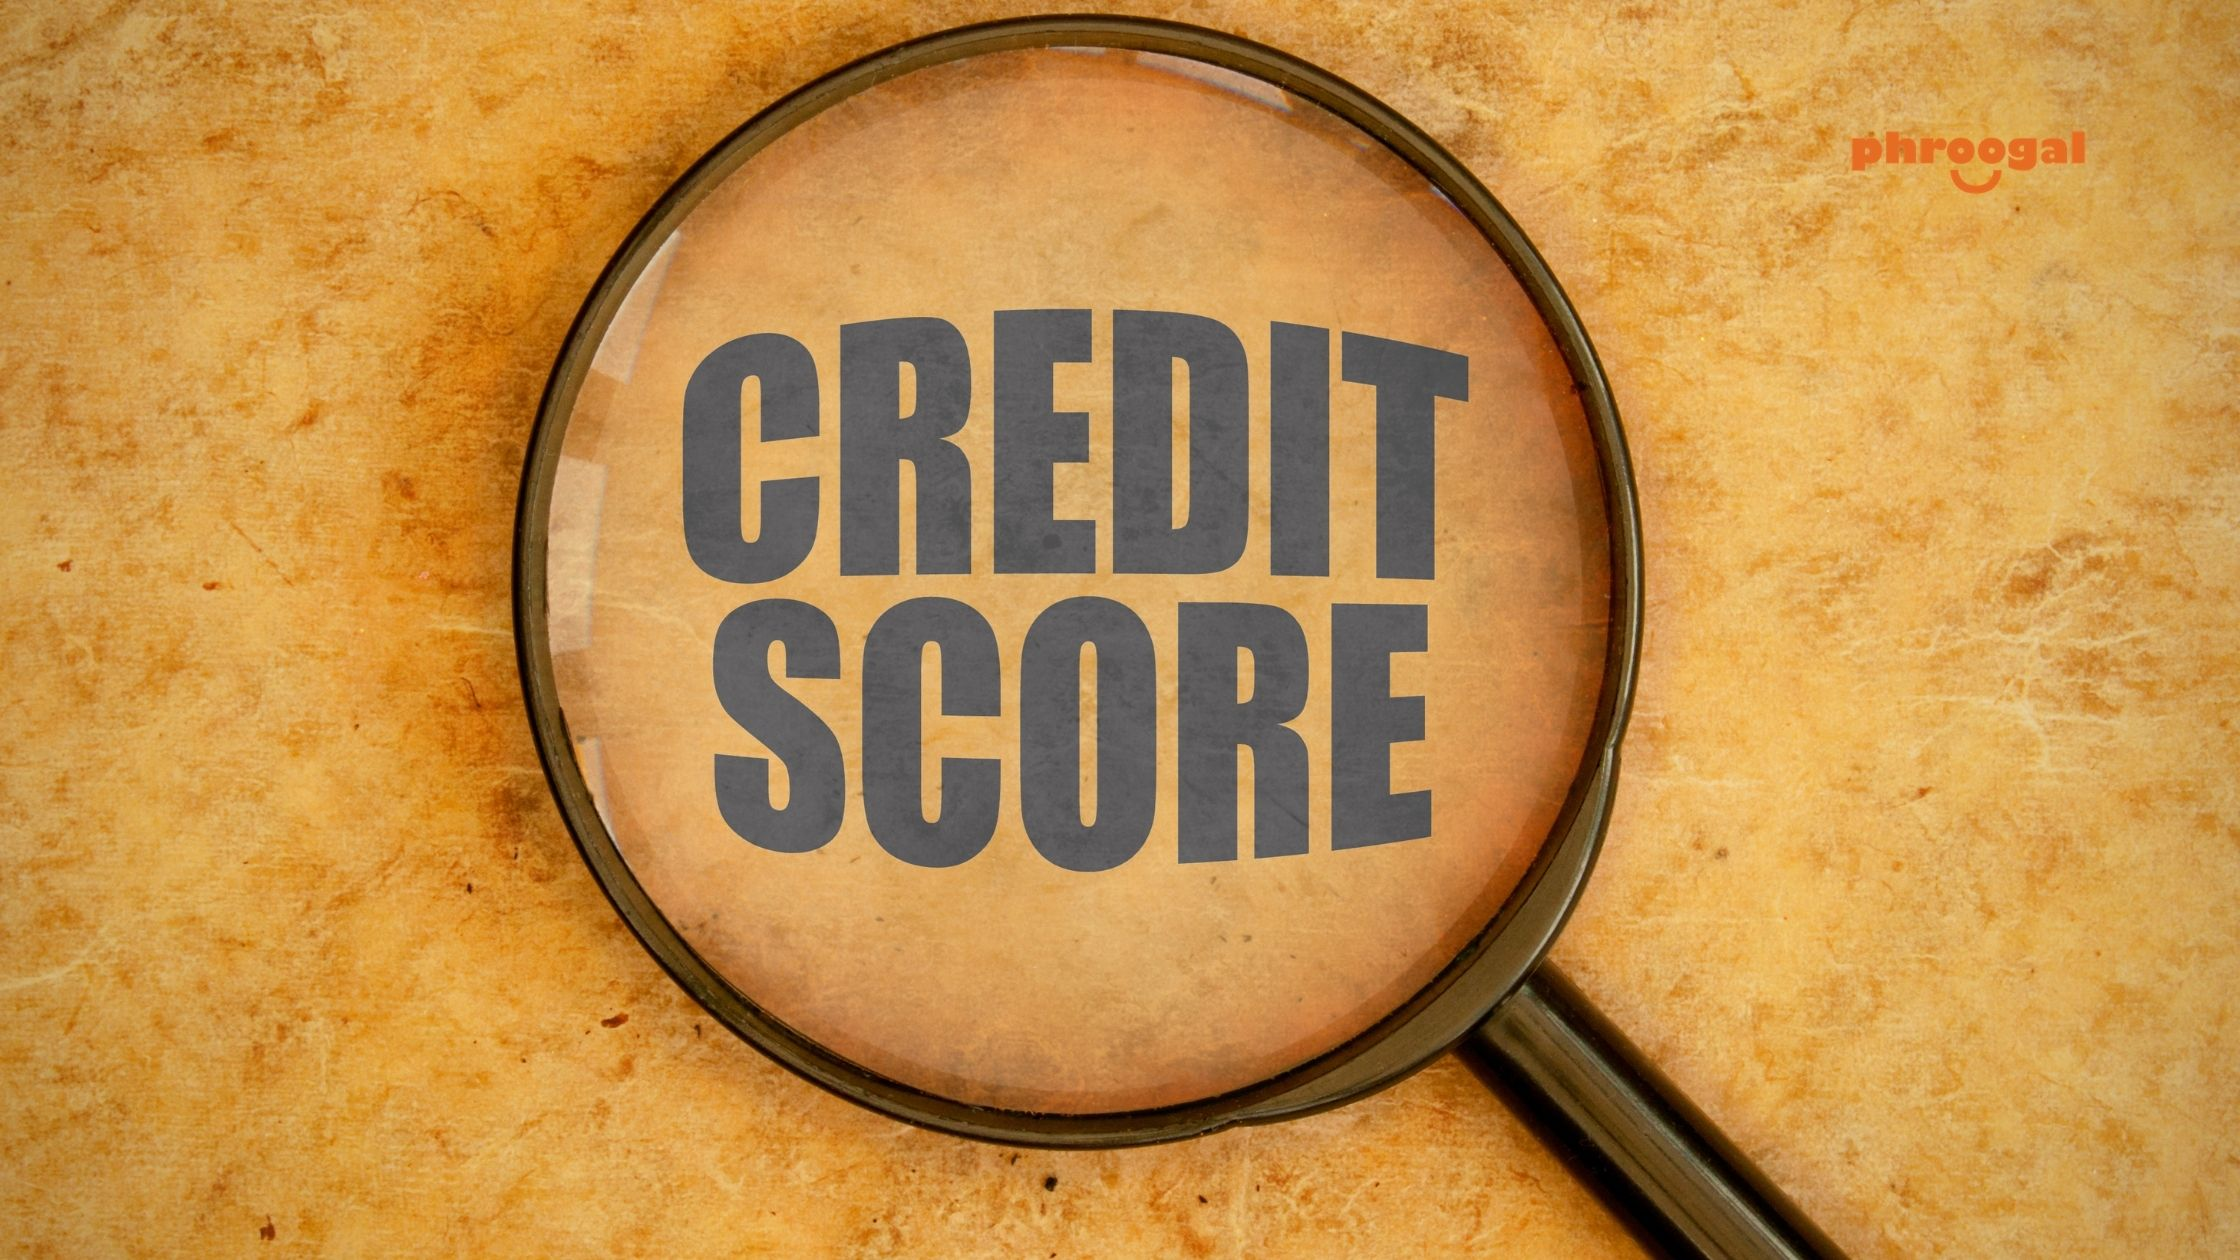 Tips to Improve and Increase Credit Scores Quickly phroogal